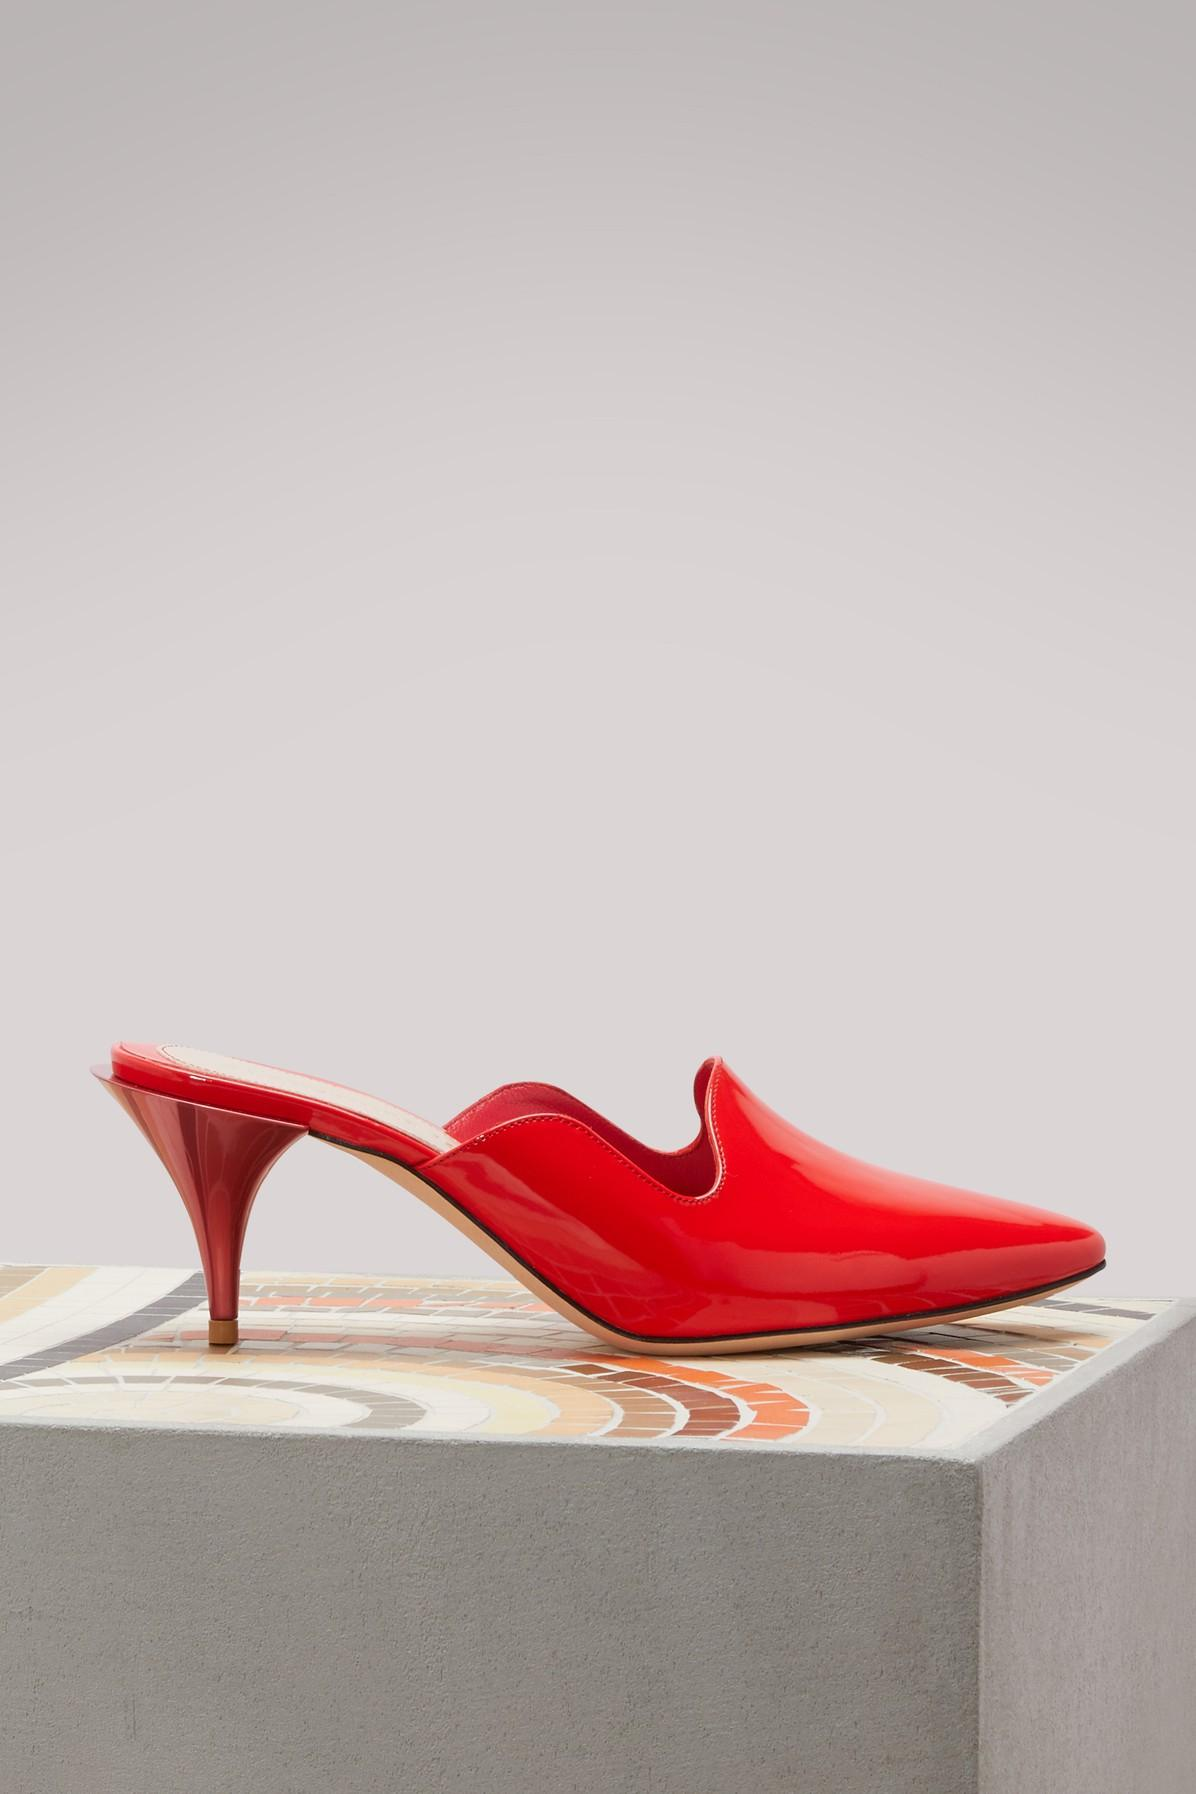 Alexander Mcqueen Leather Mules In 6409 - Lust Red